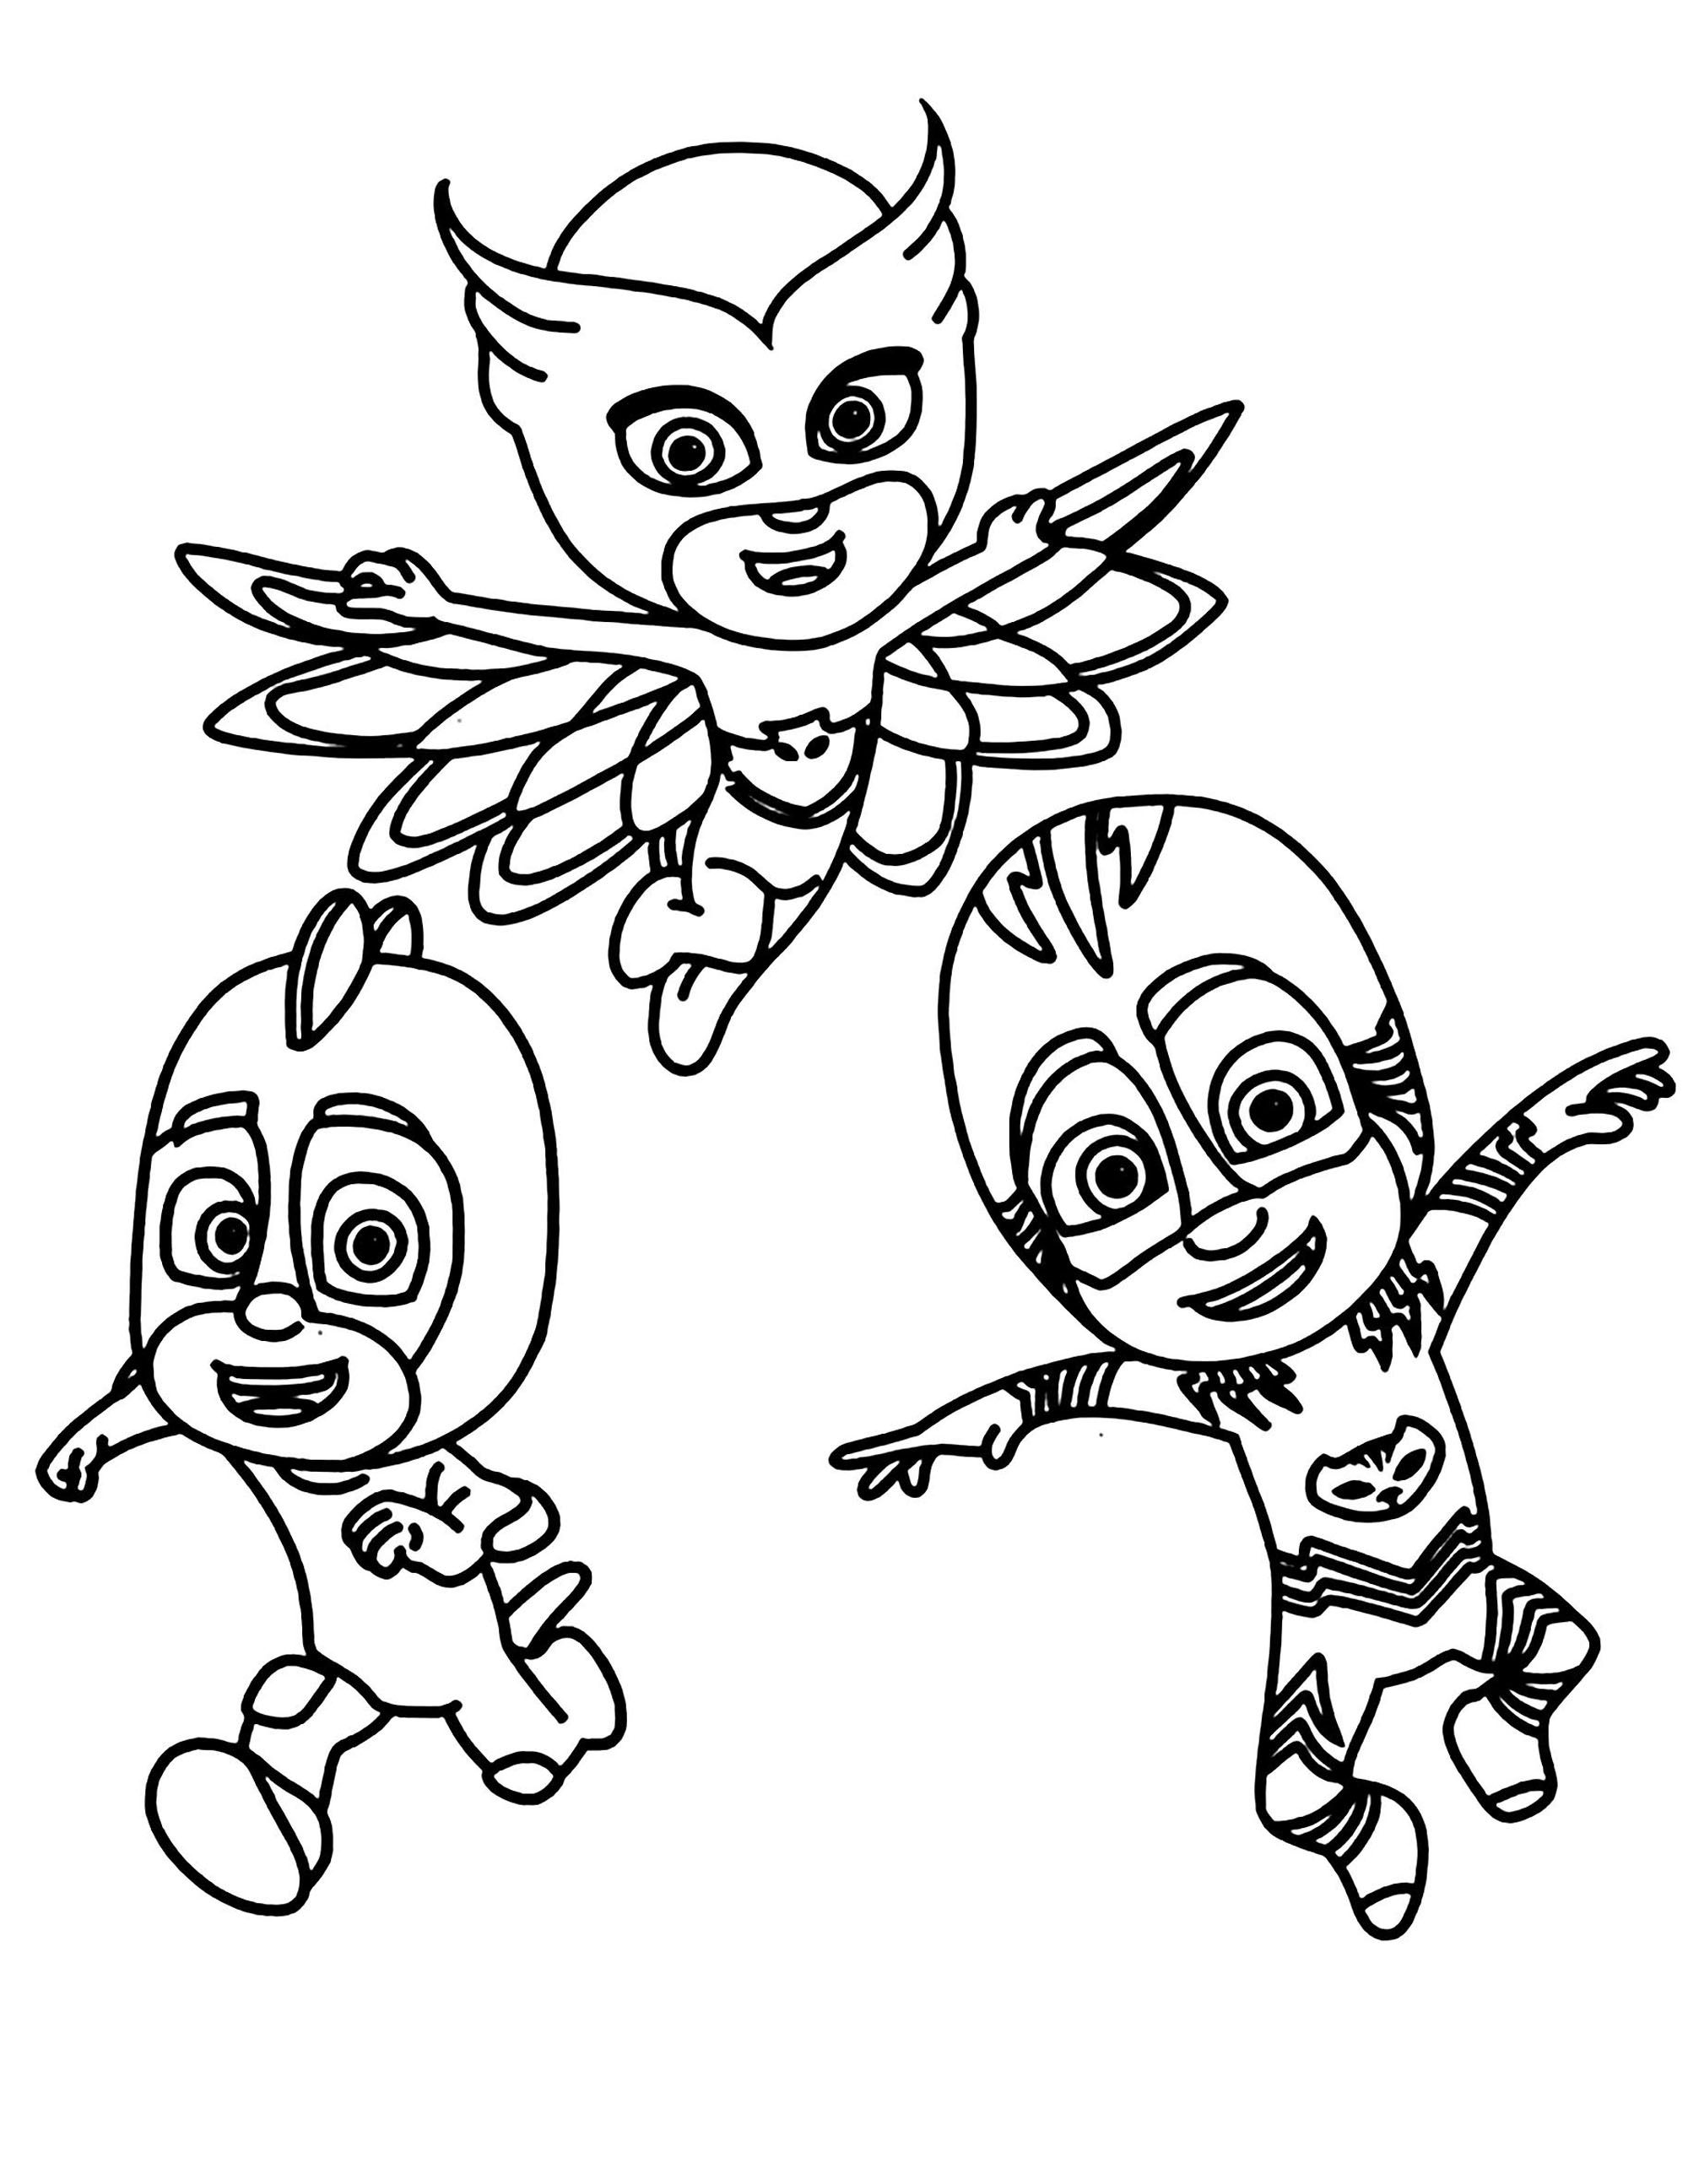 Pj Masks To Print For Free Pj Masks Coloring Pages For Kids